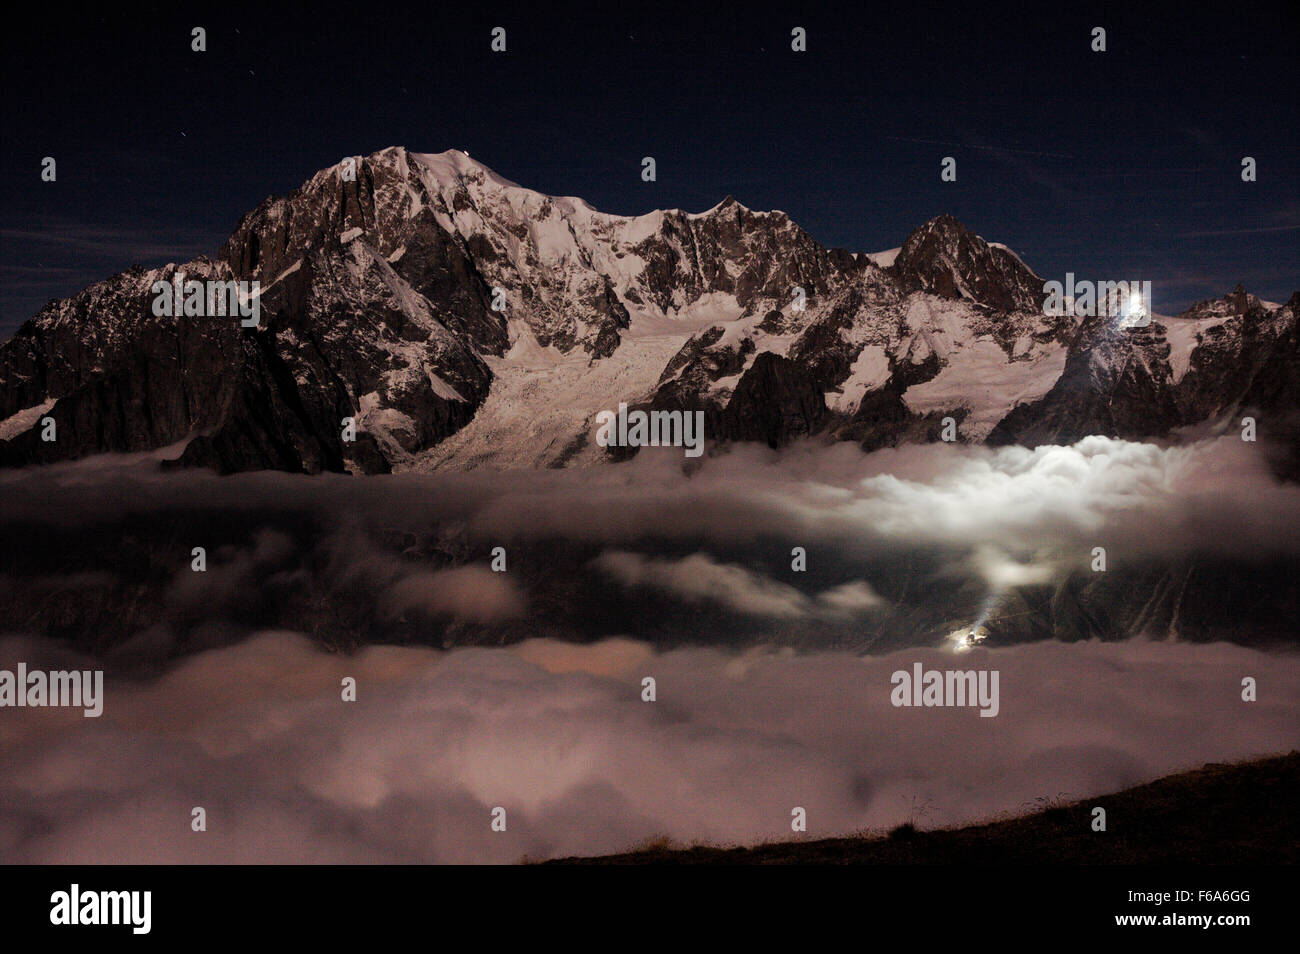 Monte Bianco in the night - Stock Image